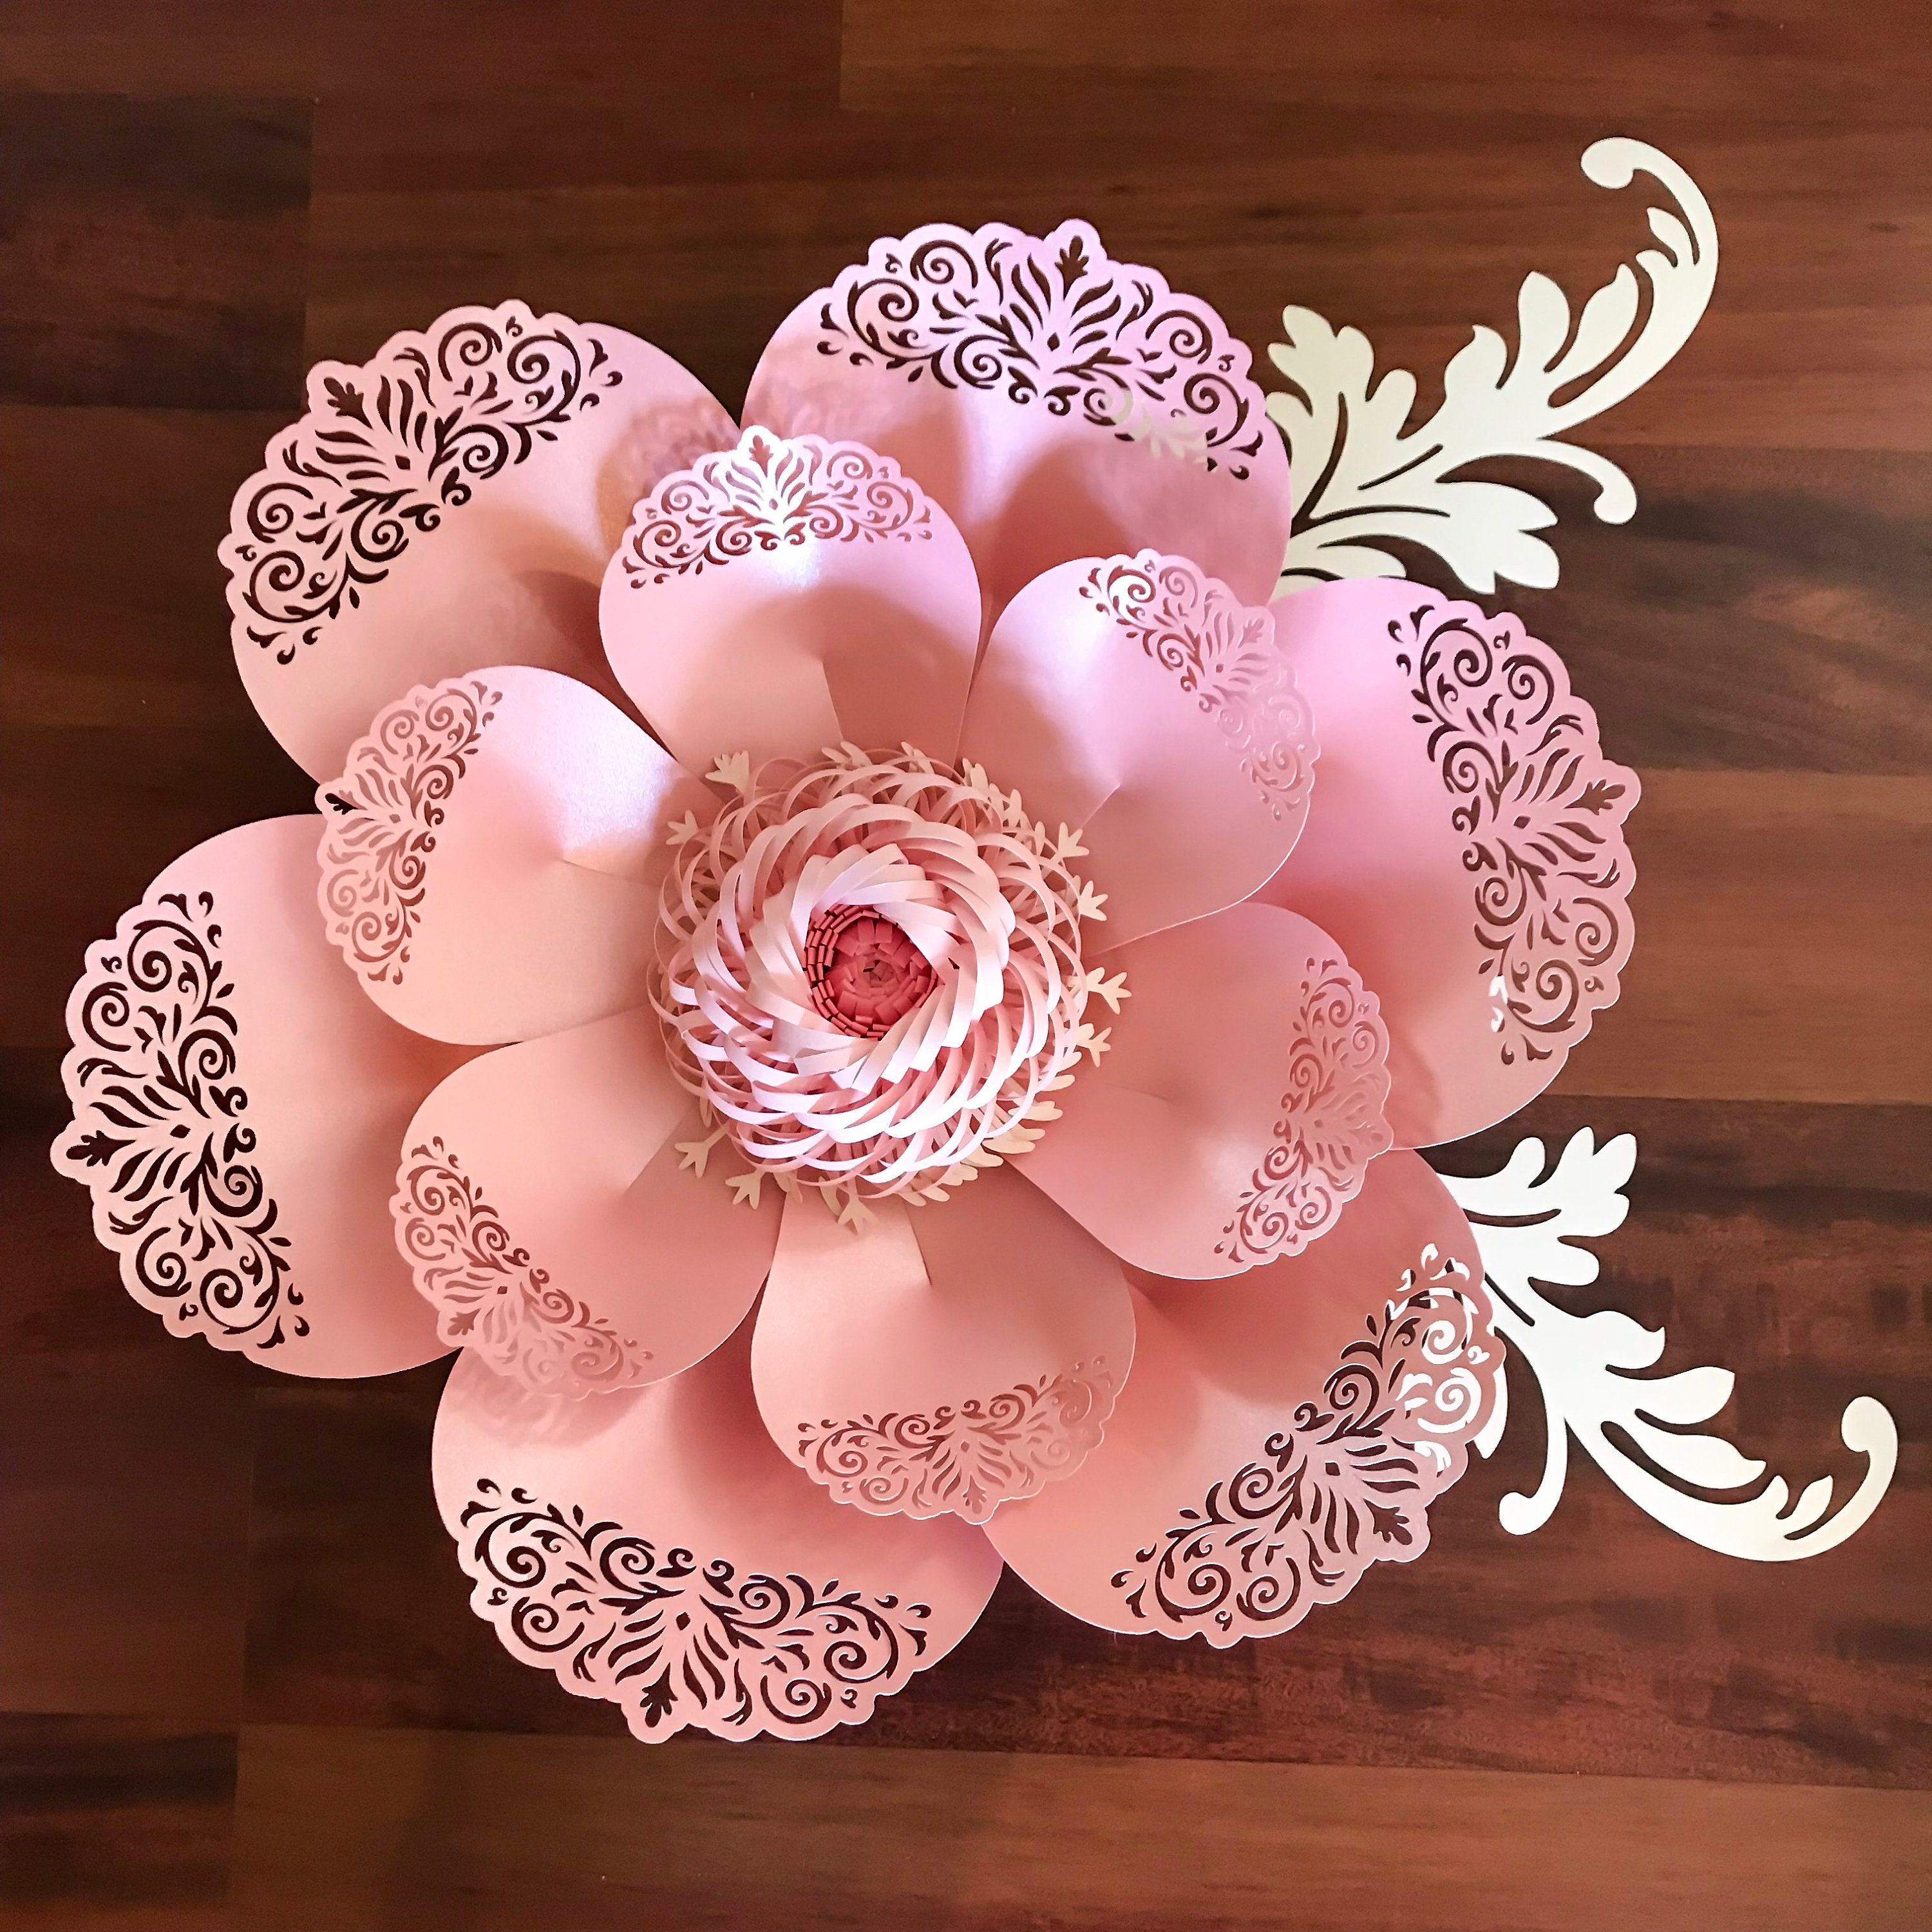 Svg Lace Paper Flower Template 8 For Cutting Machine To Make Diy